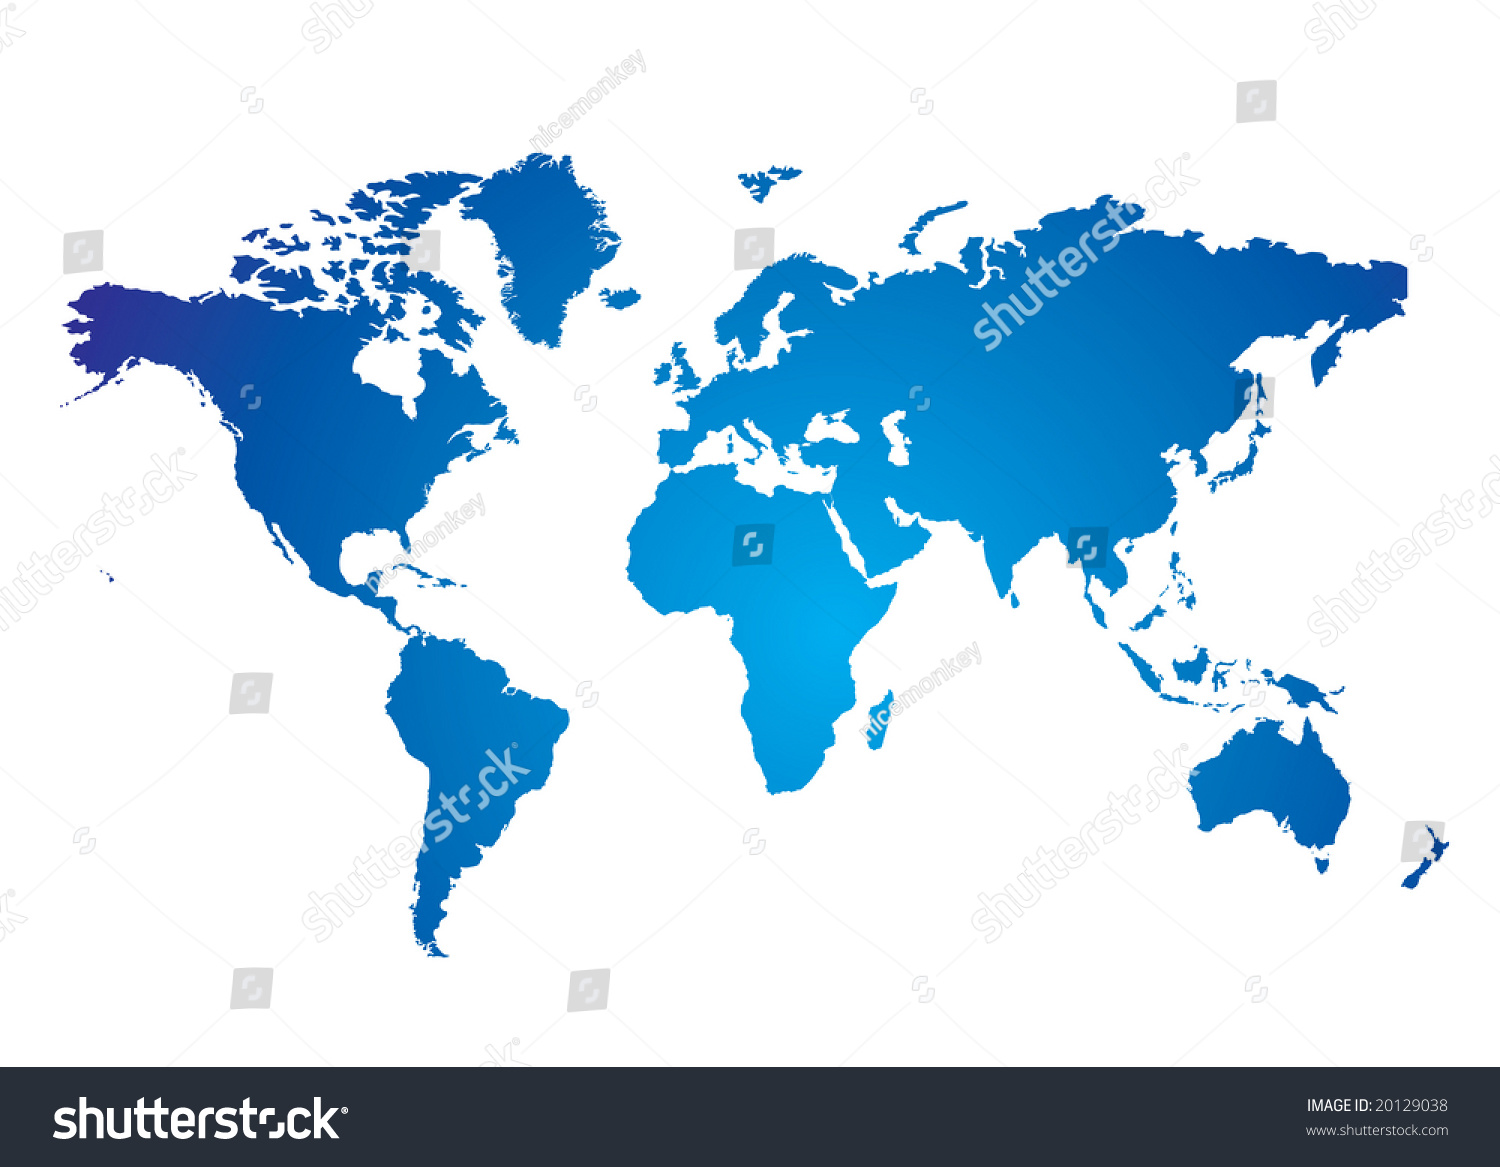 Blue And White Illustrated World Map With White Background ...